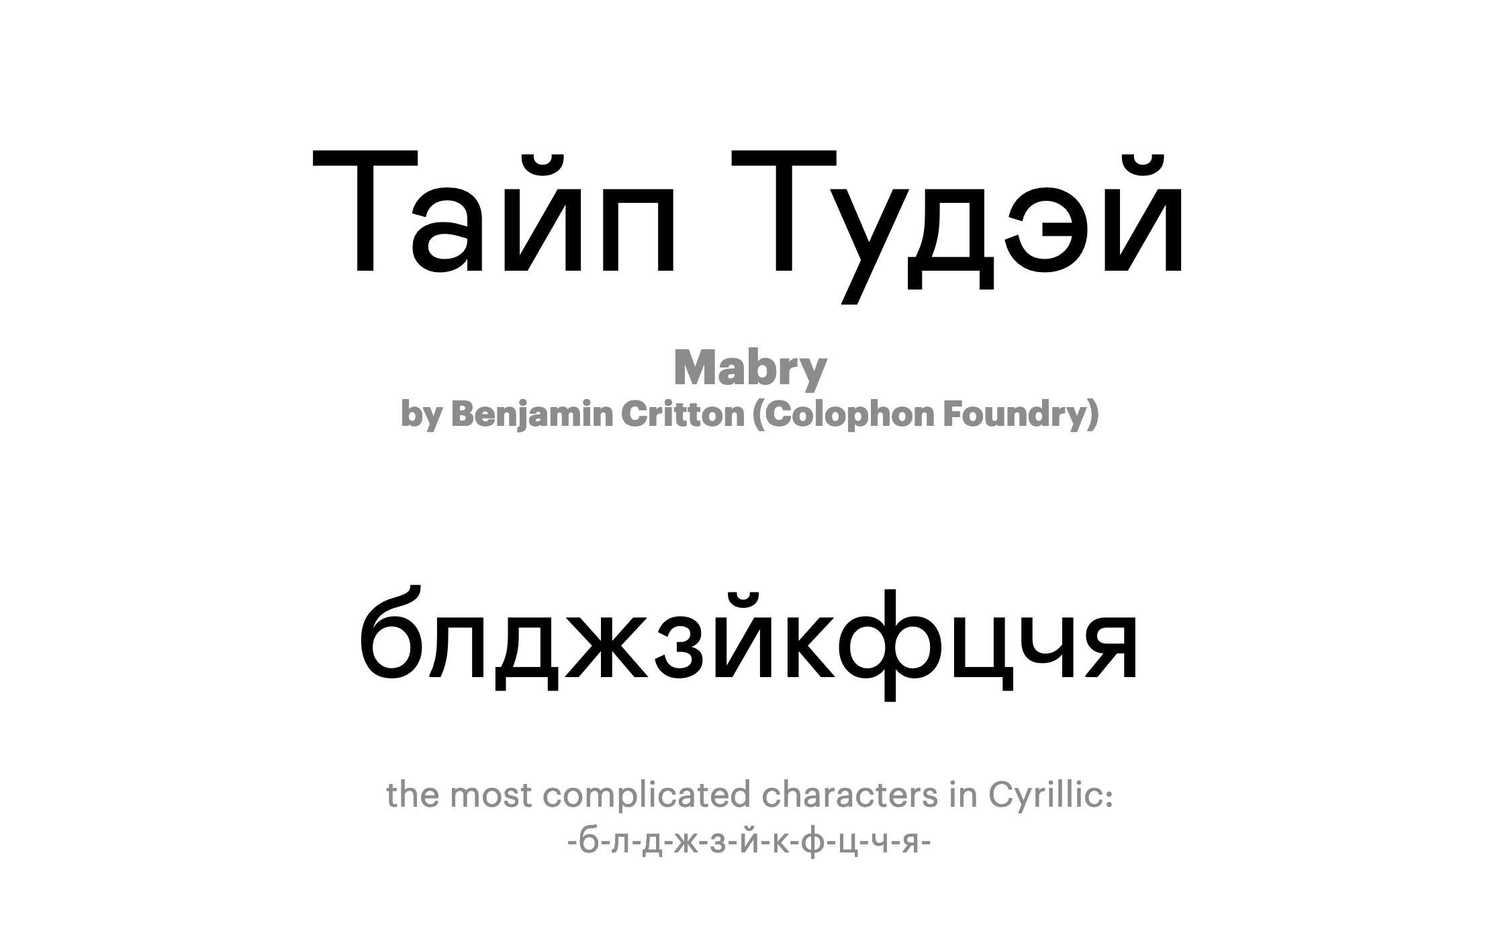 Mabry-by-Benjamin-Critton-(Colophon-Foundry)